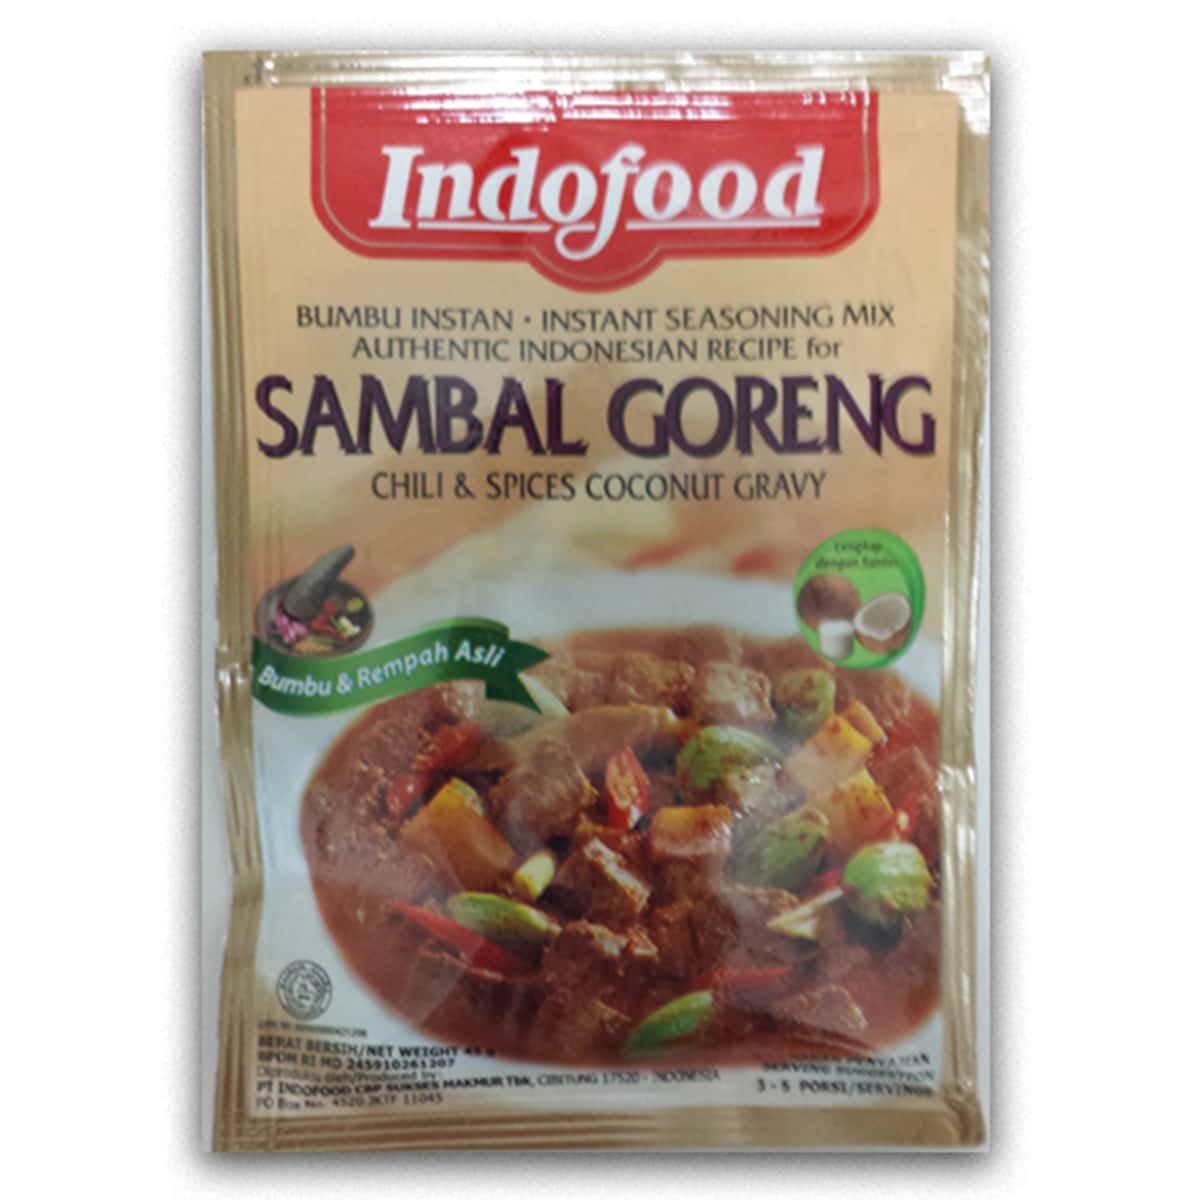 Buy Indofood Sambal Goreng (Chili and Spices Coconut Gravy) - 45 gm